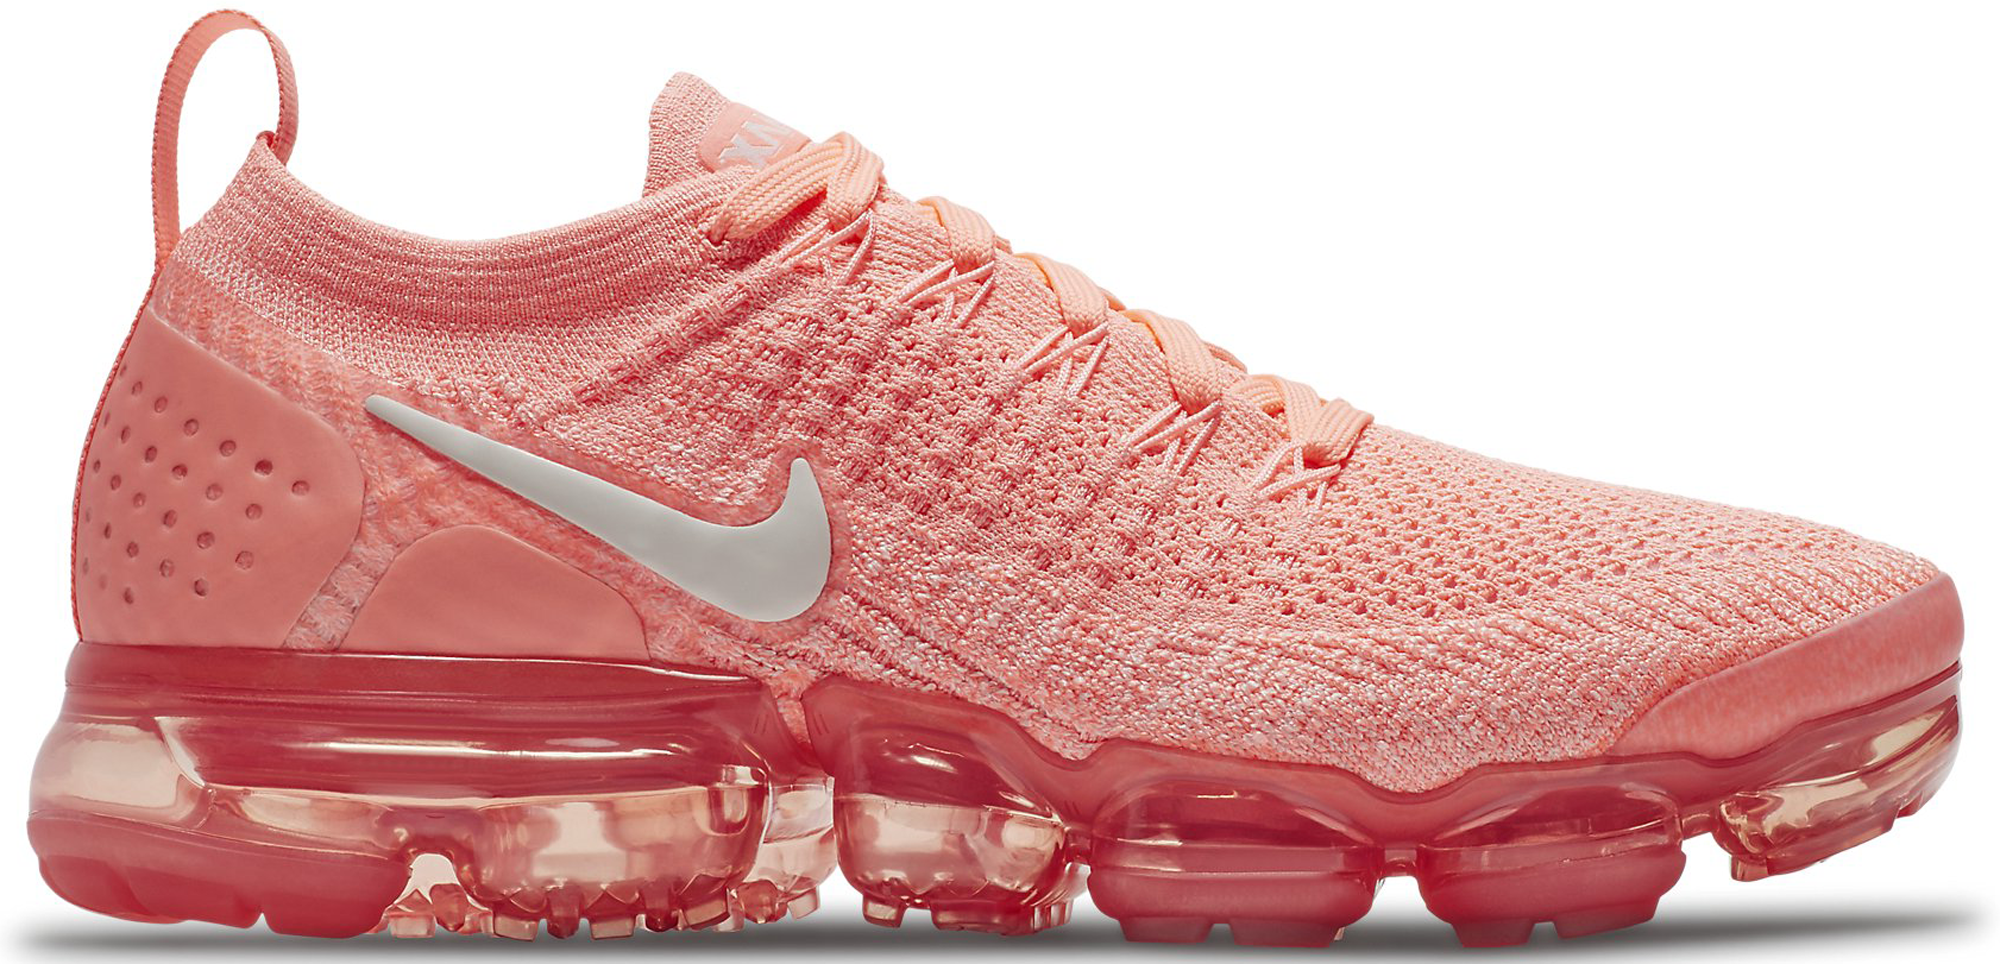 new product 2164c 51519 Women's Nike Air VaporMax Flyknit 2 Crimson Pulse